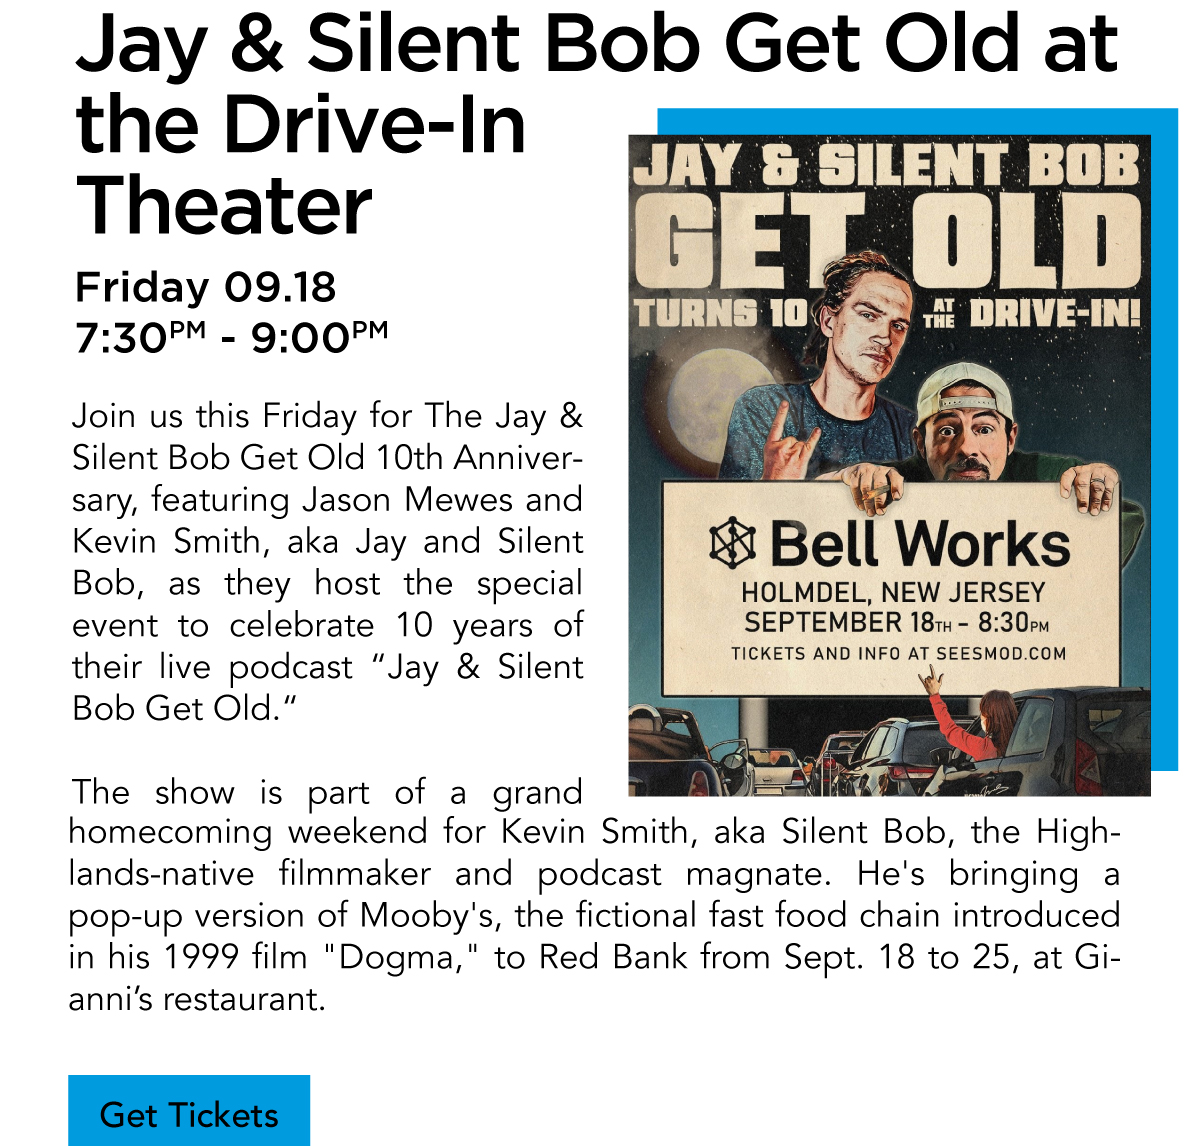 Jay & Silent Bob Get Old at the Drive-In Theater